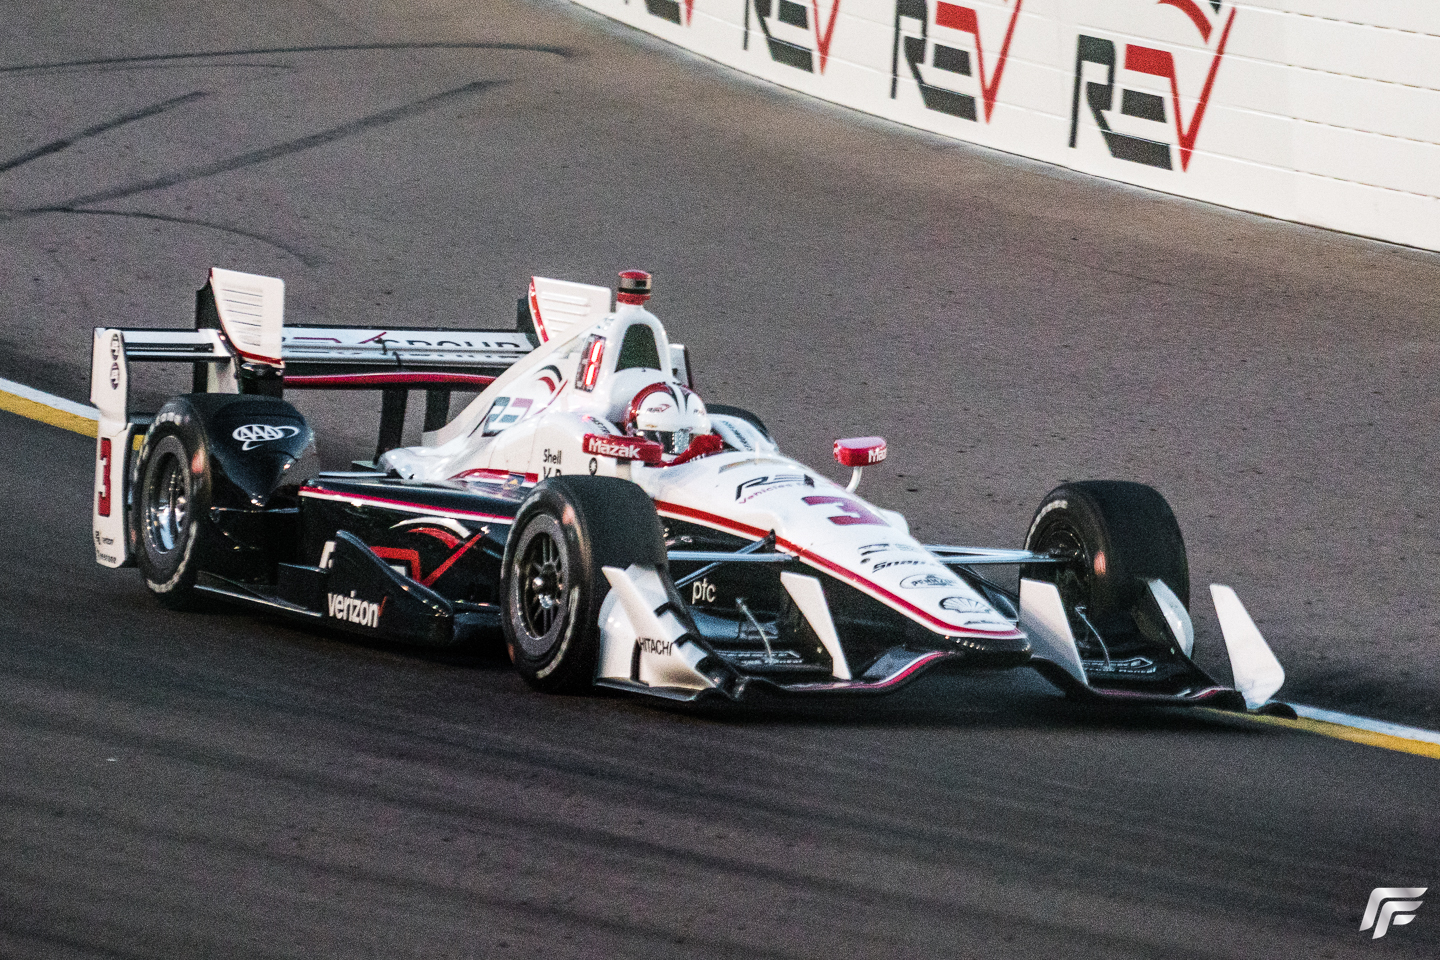 As the sun begins to set over the evening race pole-sitter Helio Castroneves leads the field.